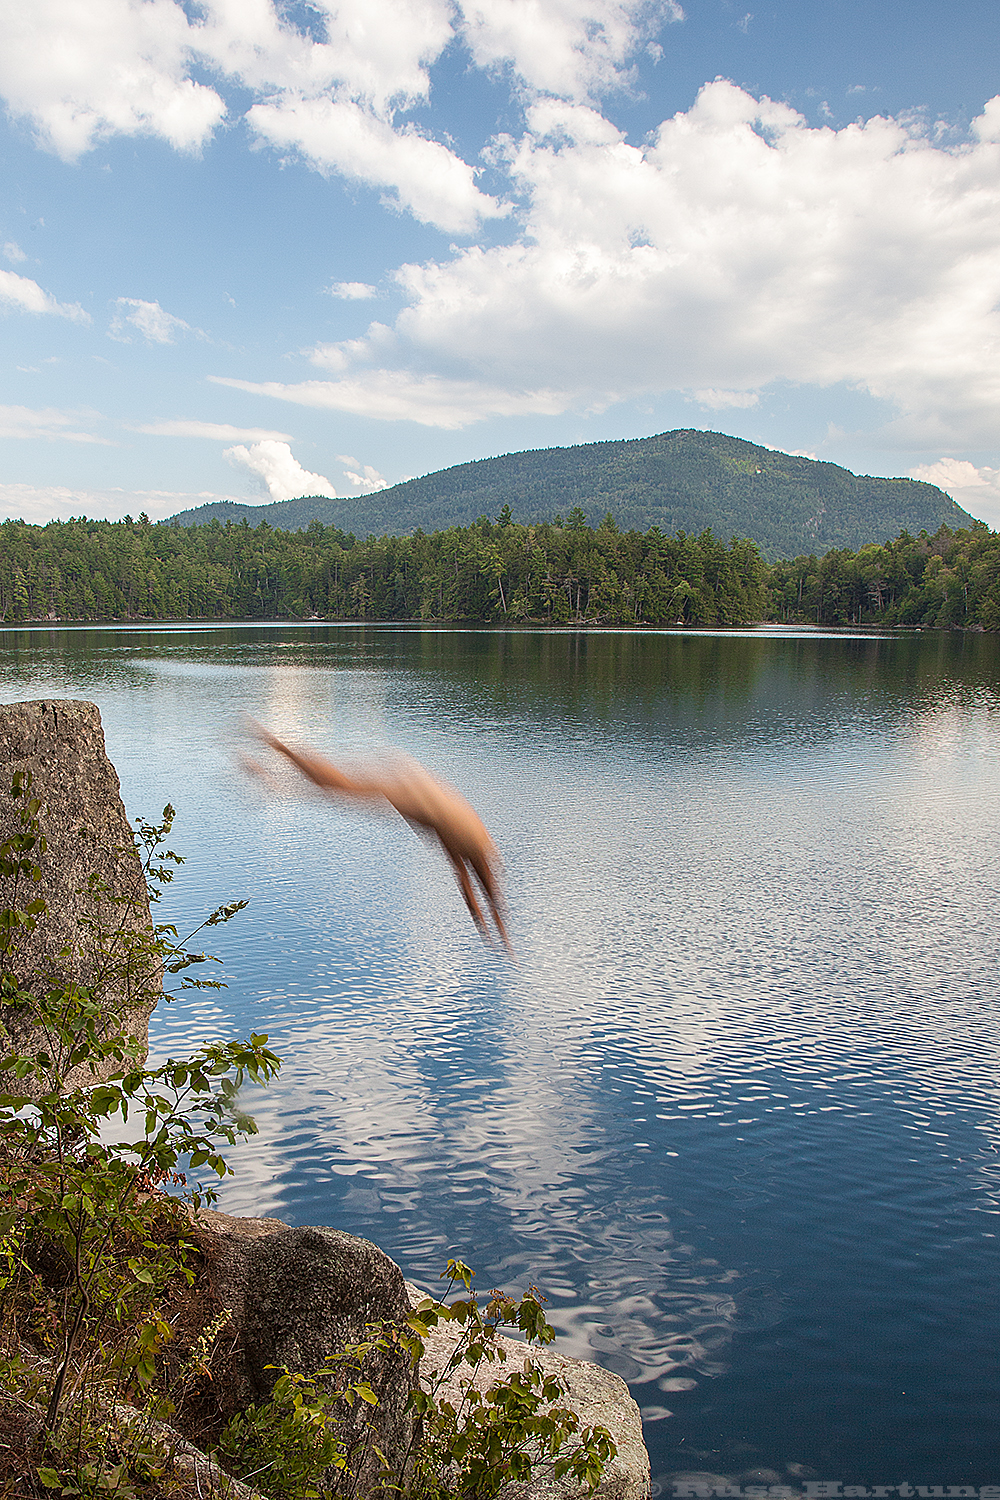 Swimming in the deep, clear water in the Pharaoh Mountain Wilderness. There is nothing like an Adirondack lake on a hot summer day.